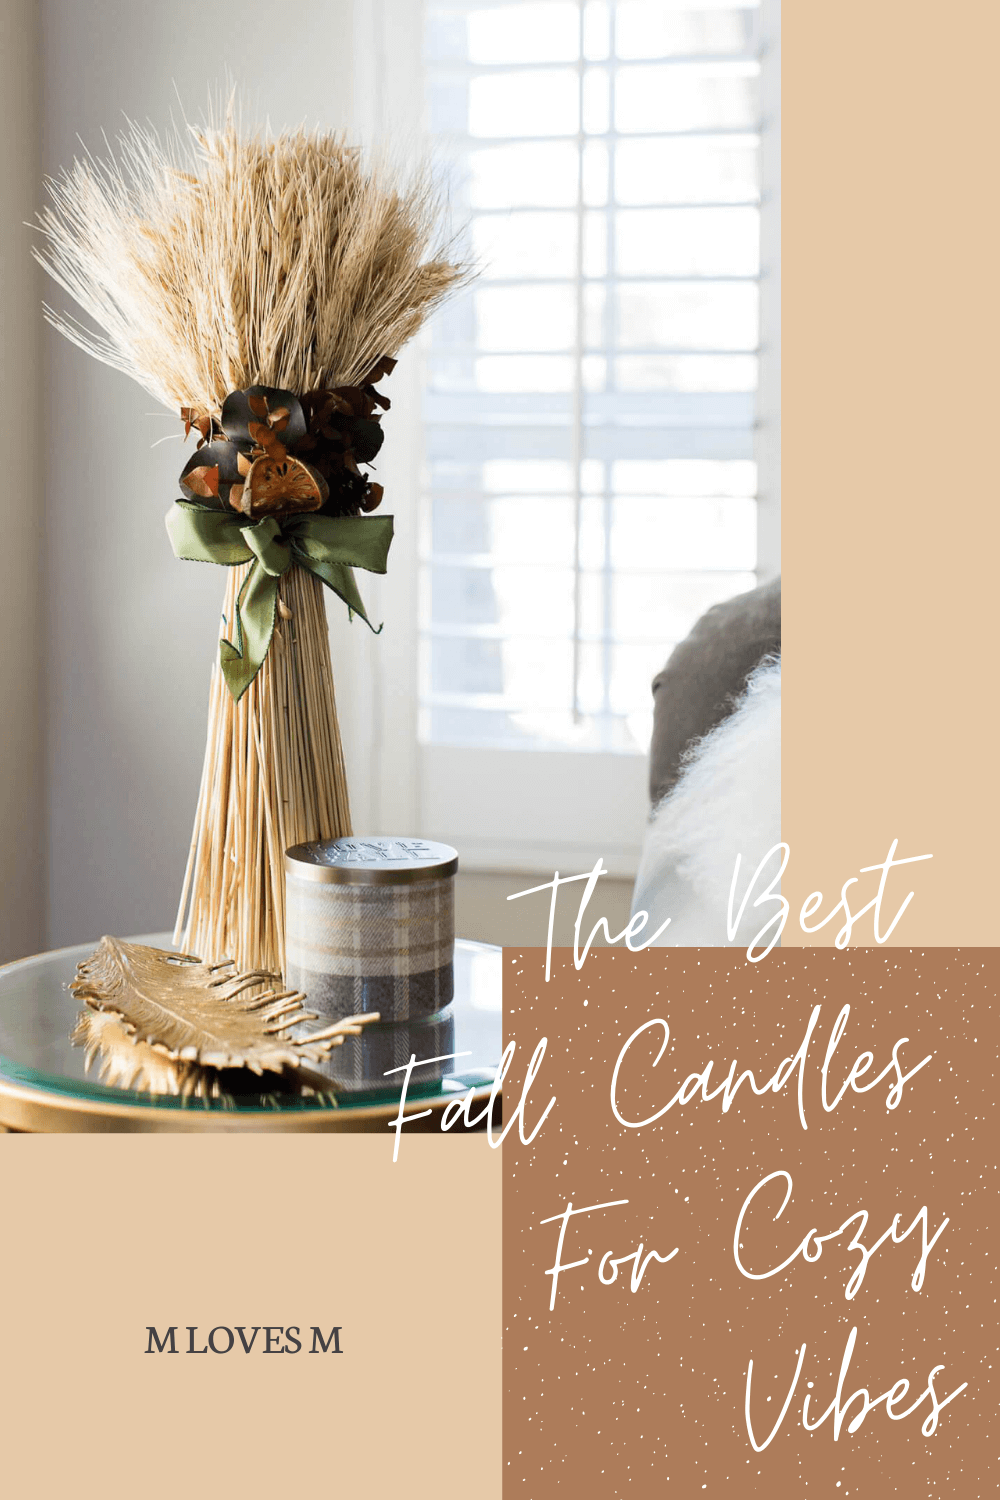 Fall candles for cozy vibes